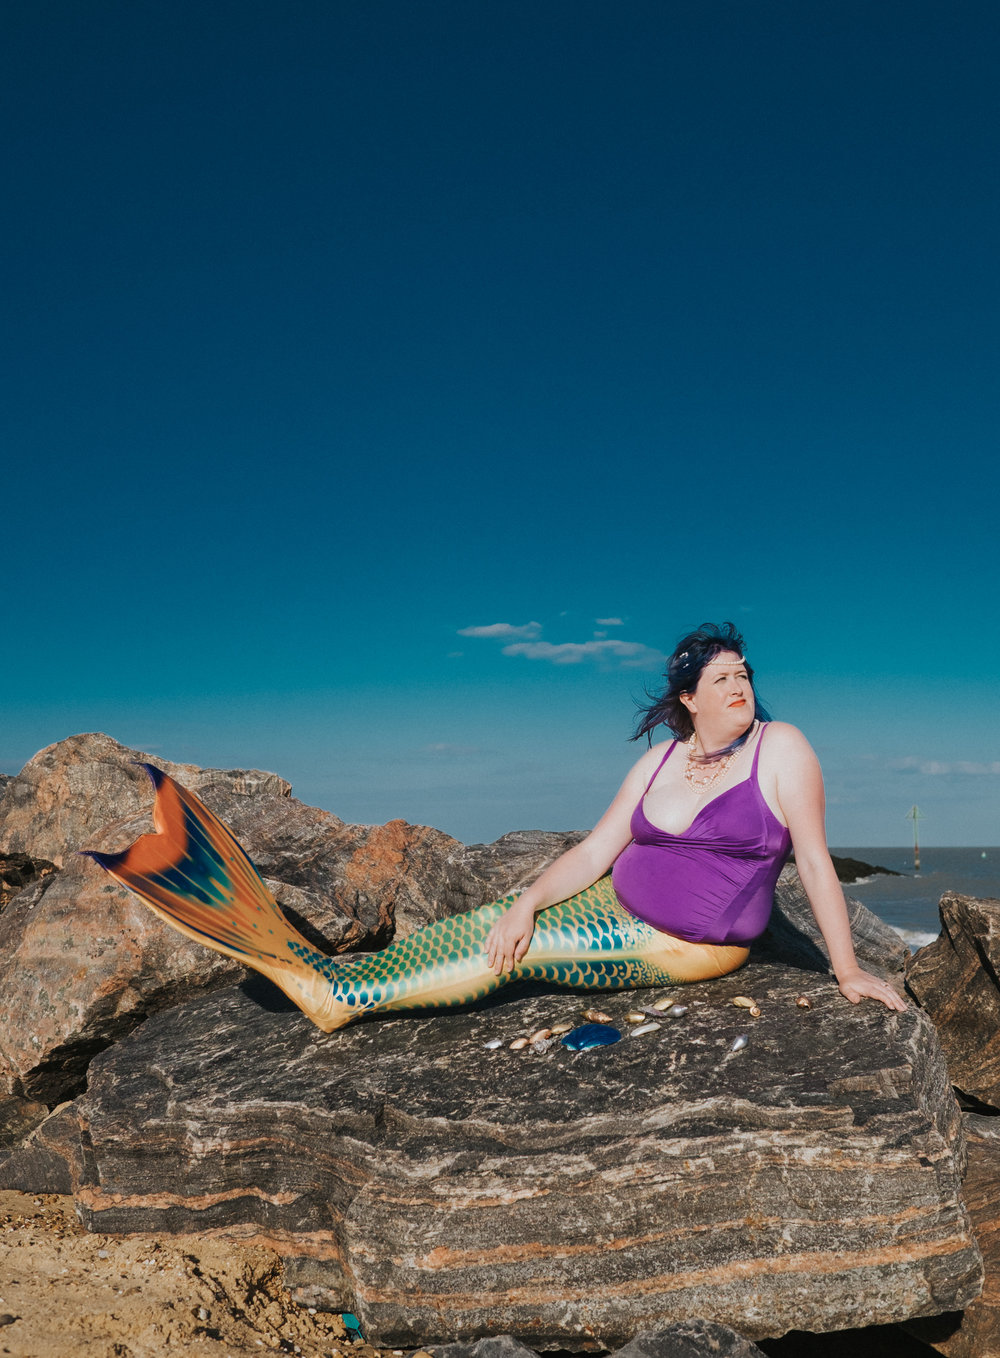 Body-Positive-Mermaids-Grace-Elizabeth-Mermaiding-UK-Alternative-Wedding-Photographer-Colchester-Essex-Suffolk-Norfolk-Devon (56 of 59).jpg